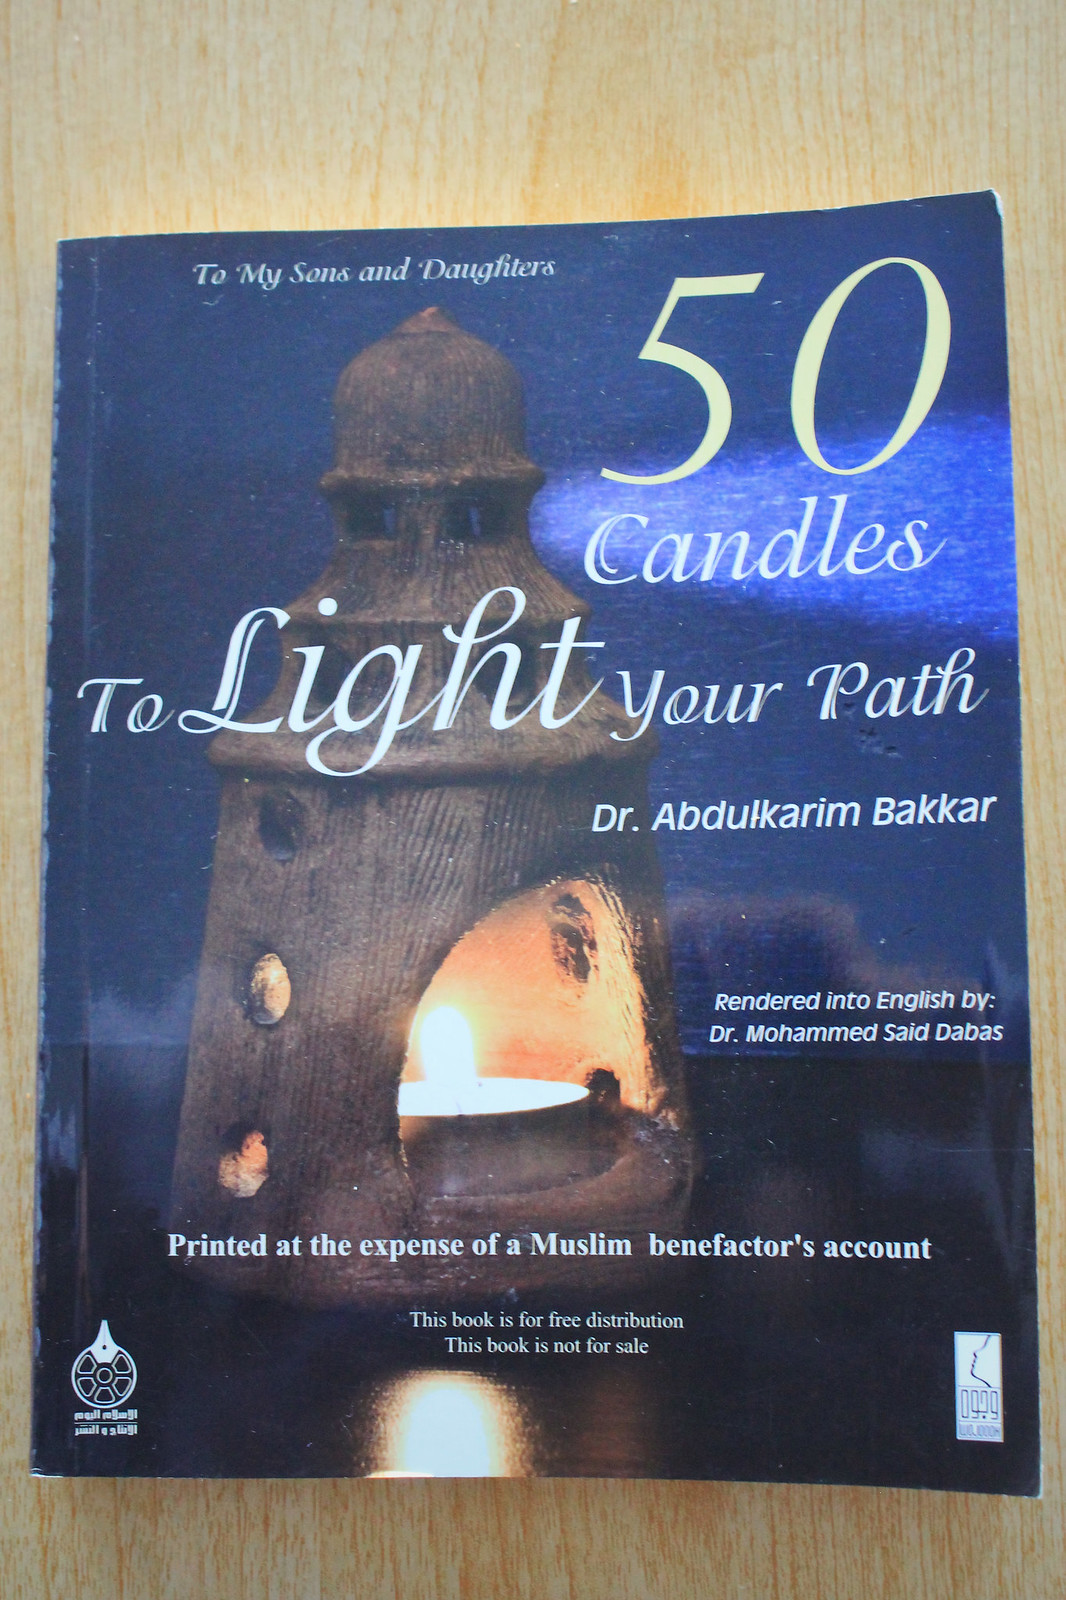 https://www.goodreads.com/book/show/23606388-to-my-sons-and-daughters-50-candles-to-light-your-path